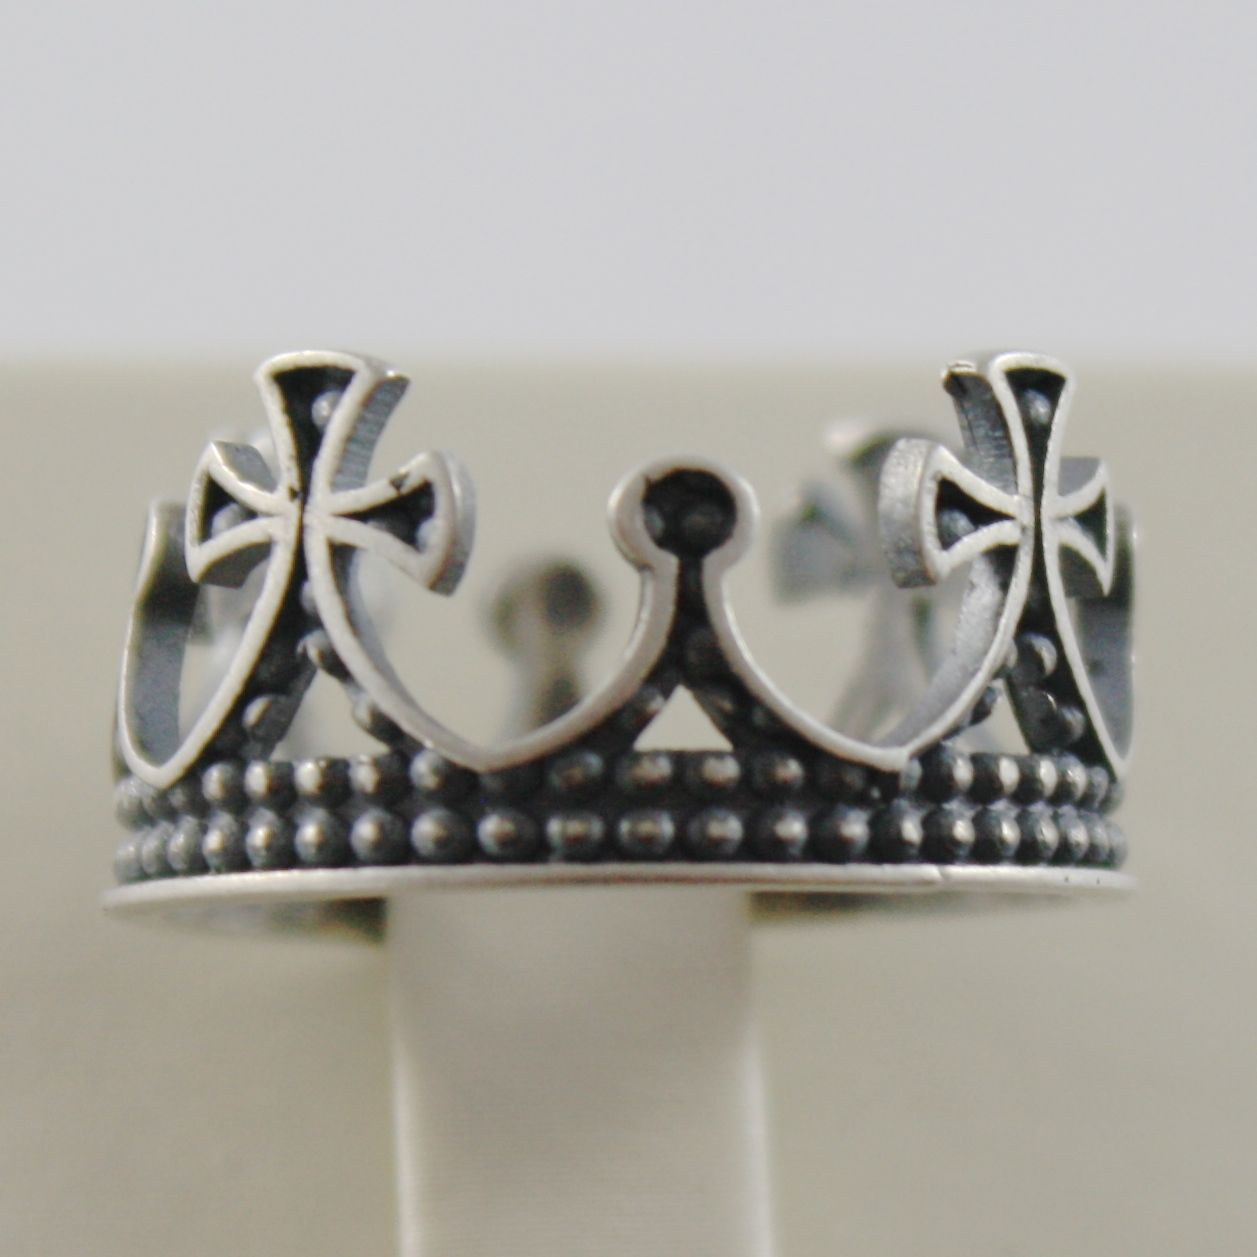 SOLID 925 BURNISHED SILVER BAND MEDIEVAL CROWN RING VINTAGE STYLE, MADE IN ITALY